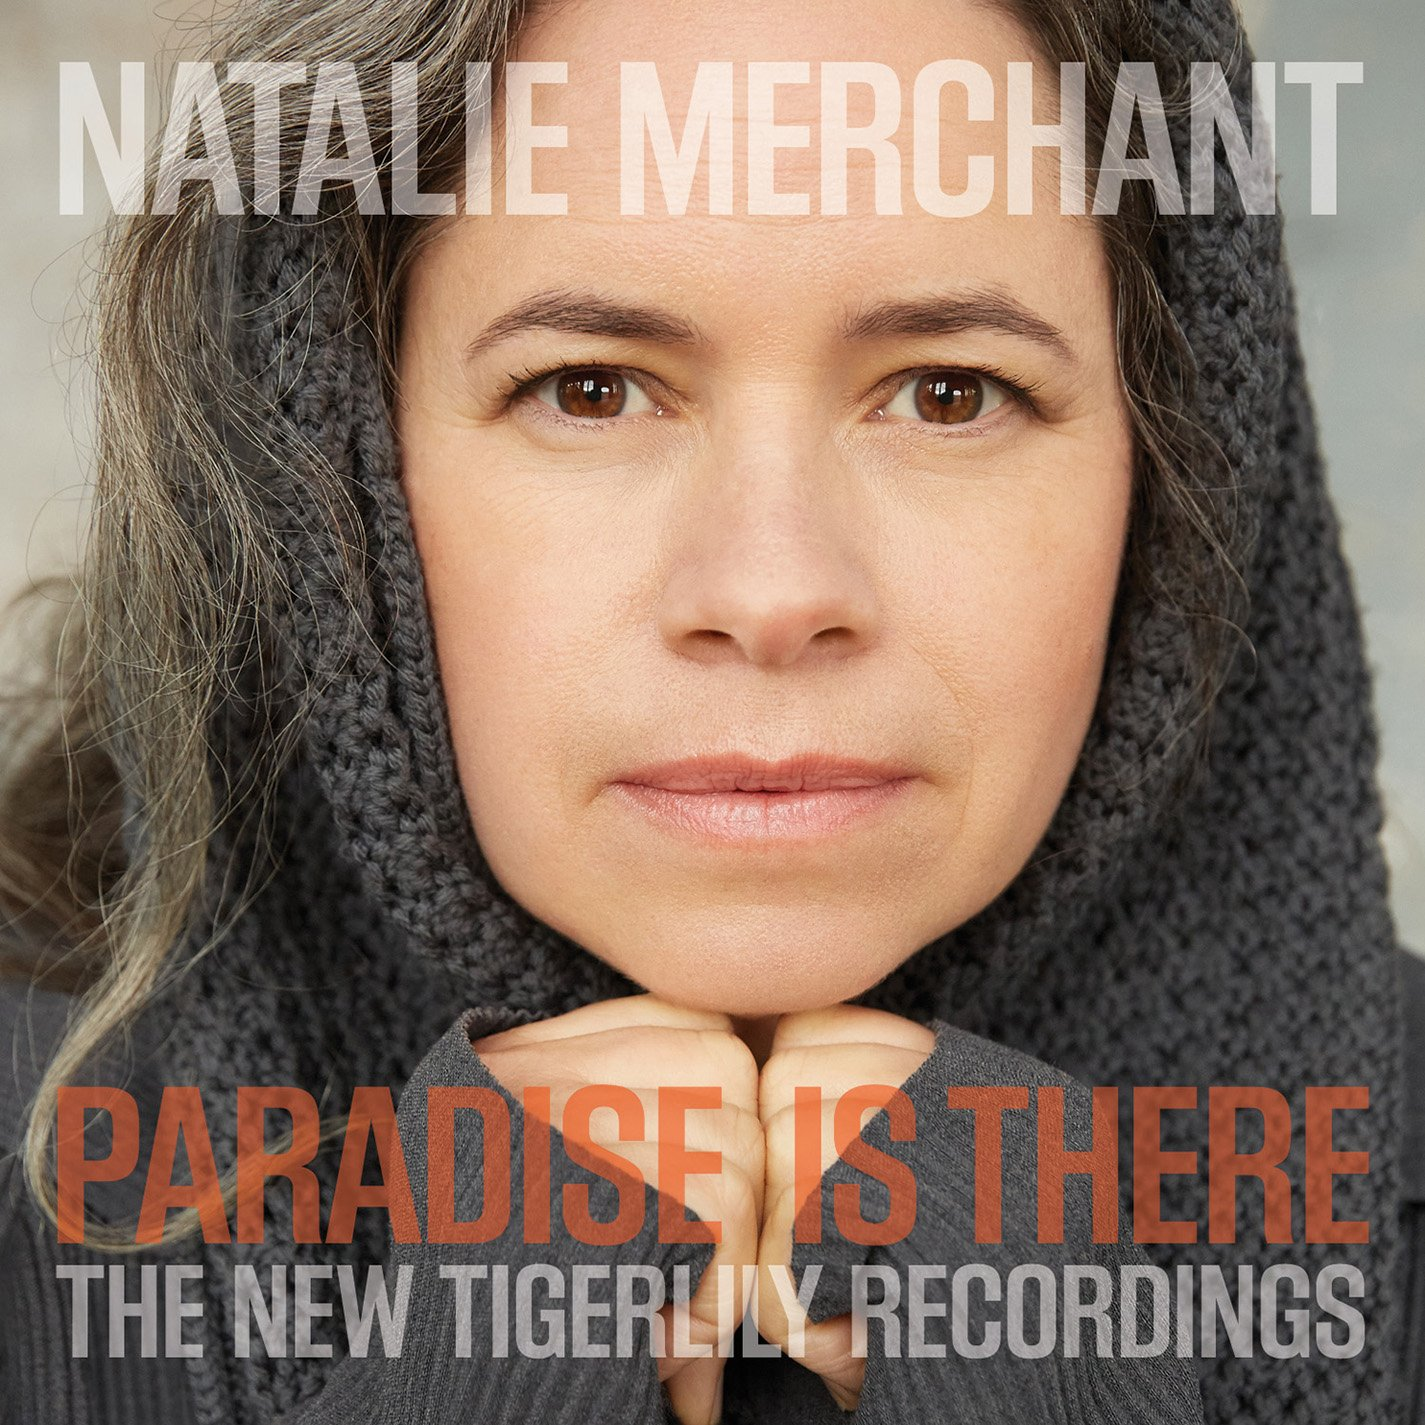 Natalie Merchant - Paradise Is There -- The New Tigerlily Recordings